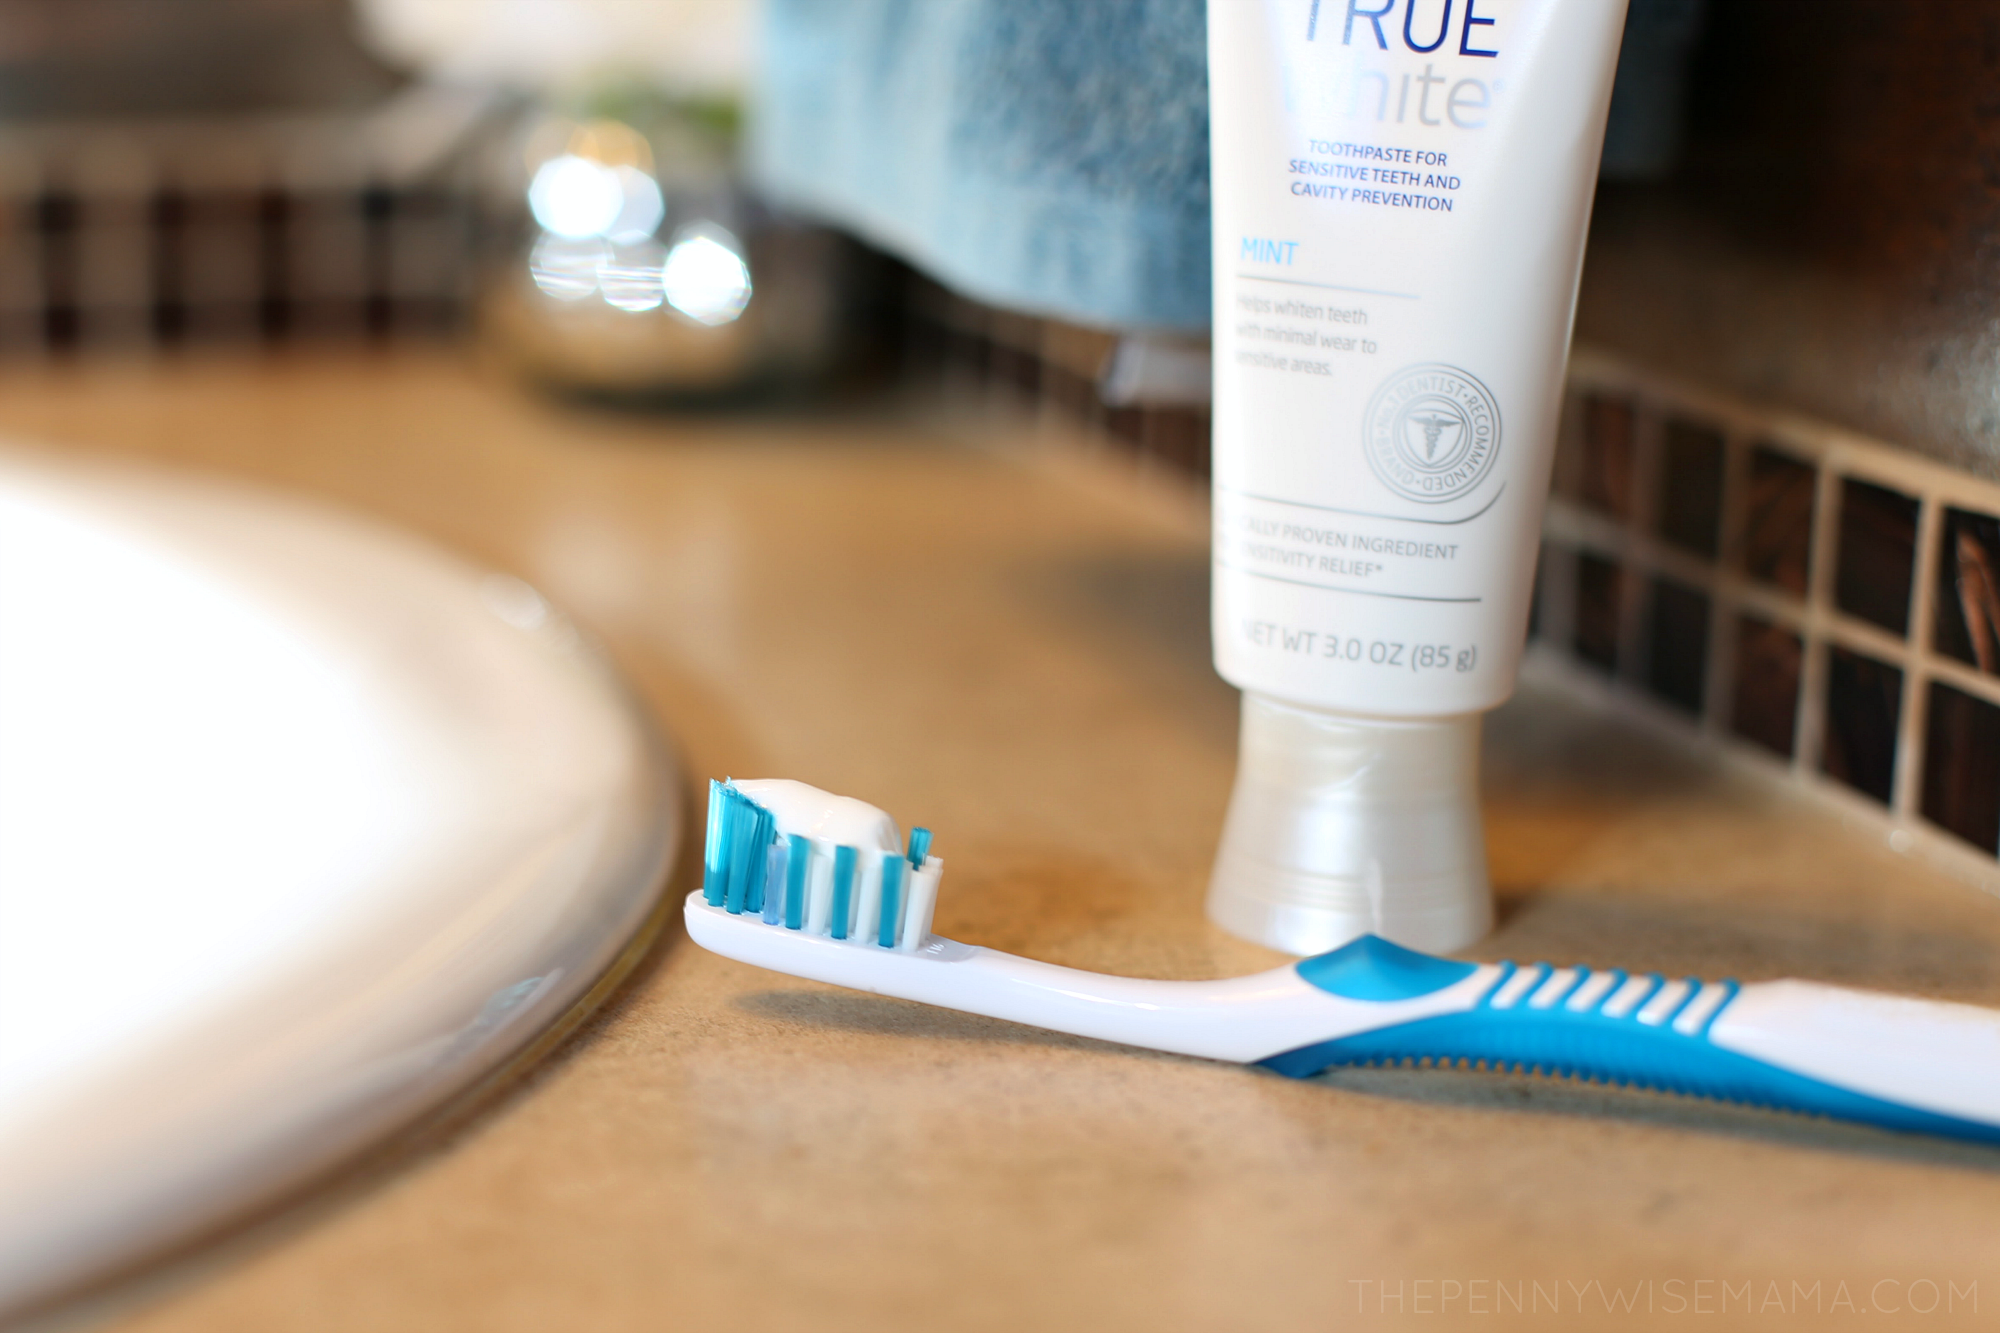 Sensodyne True White Toothpaste